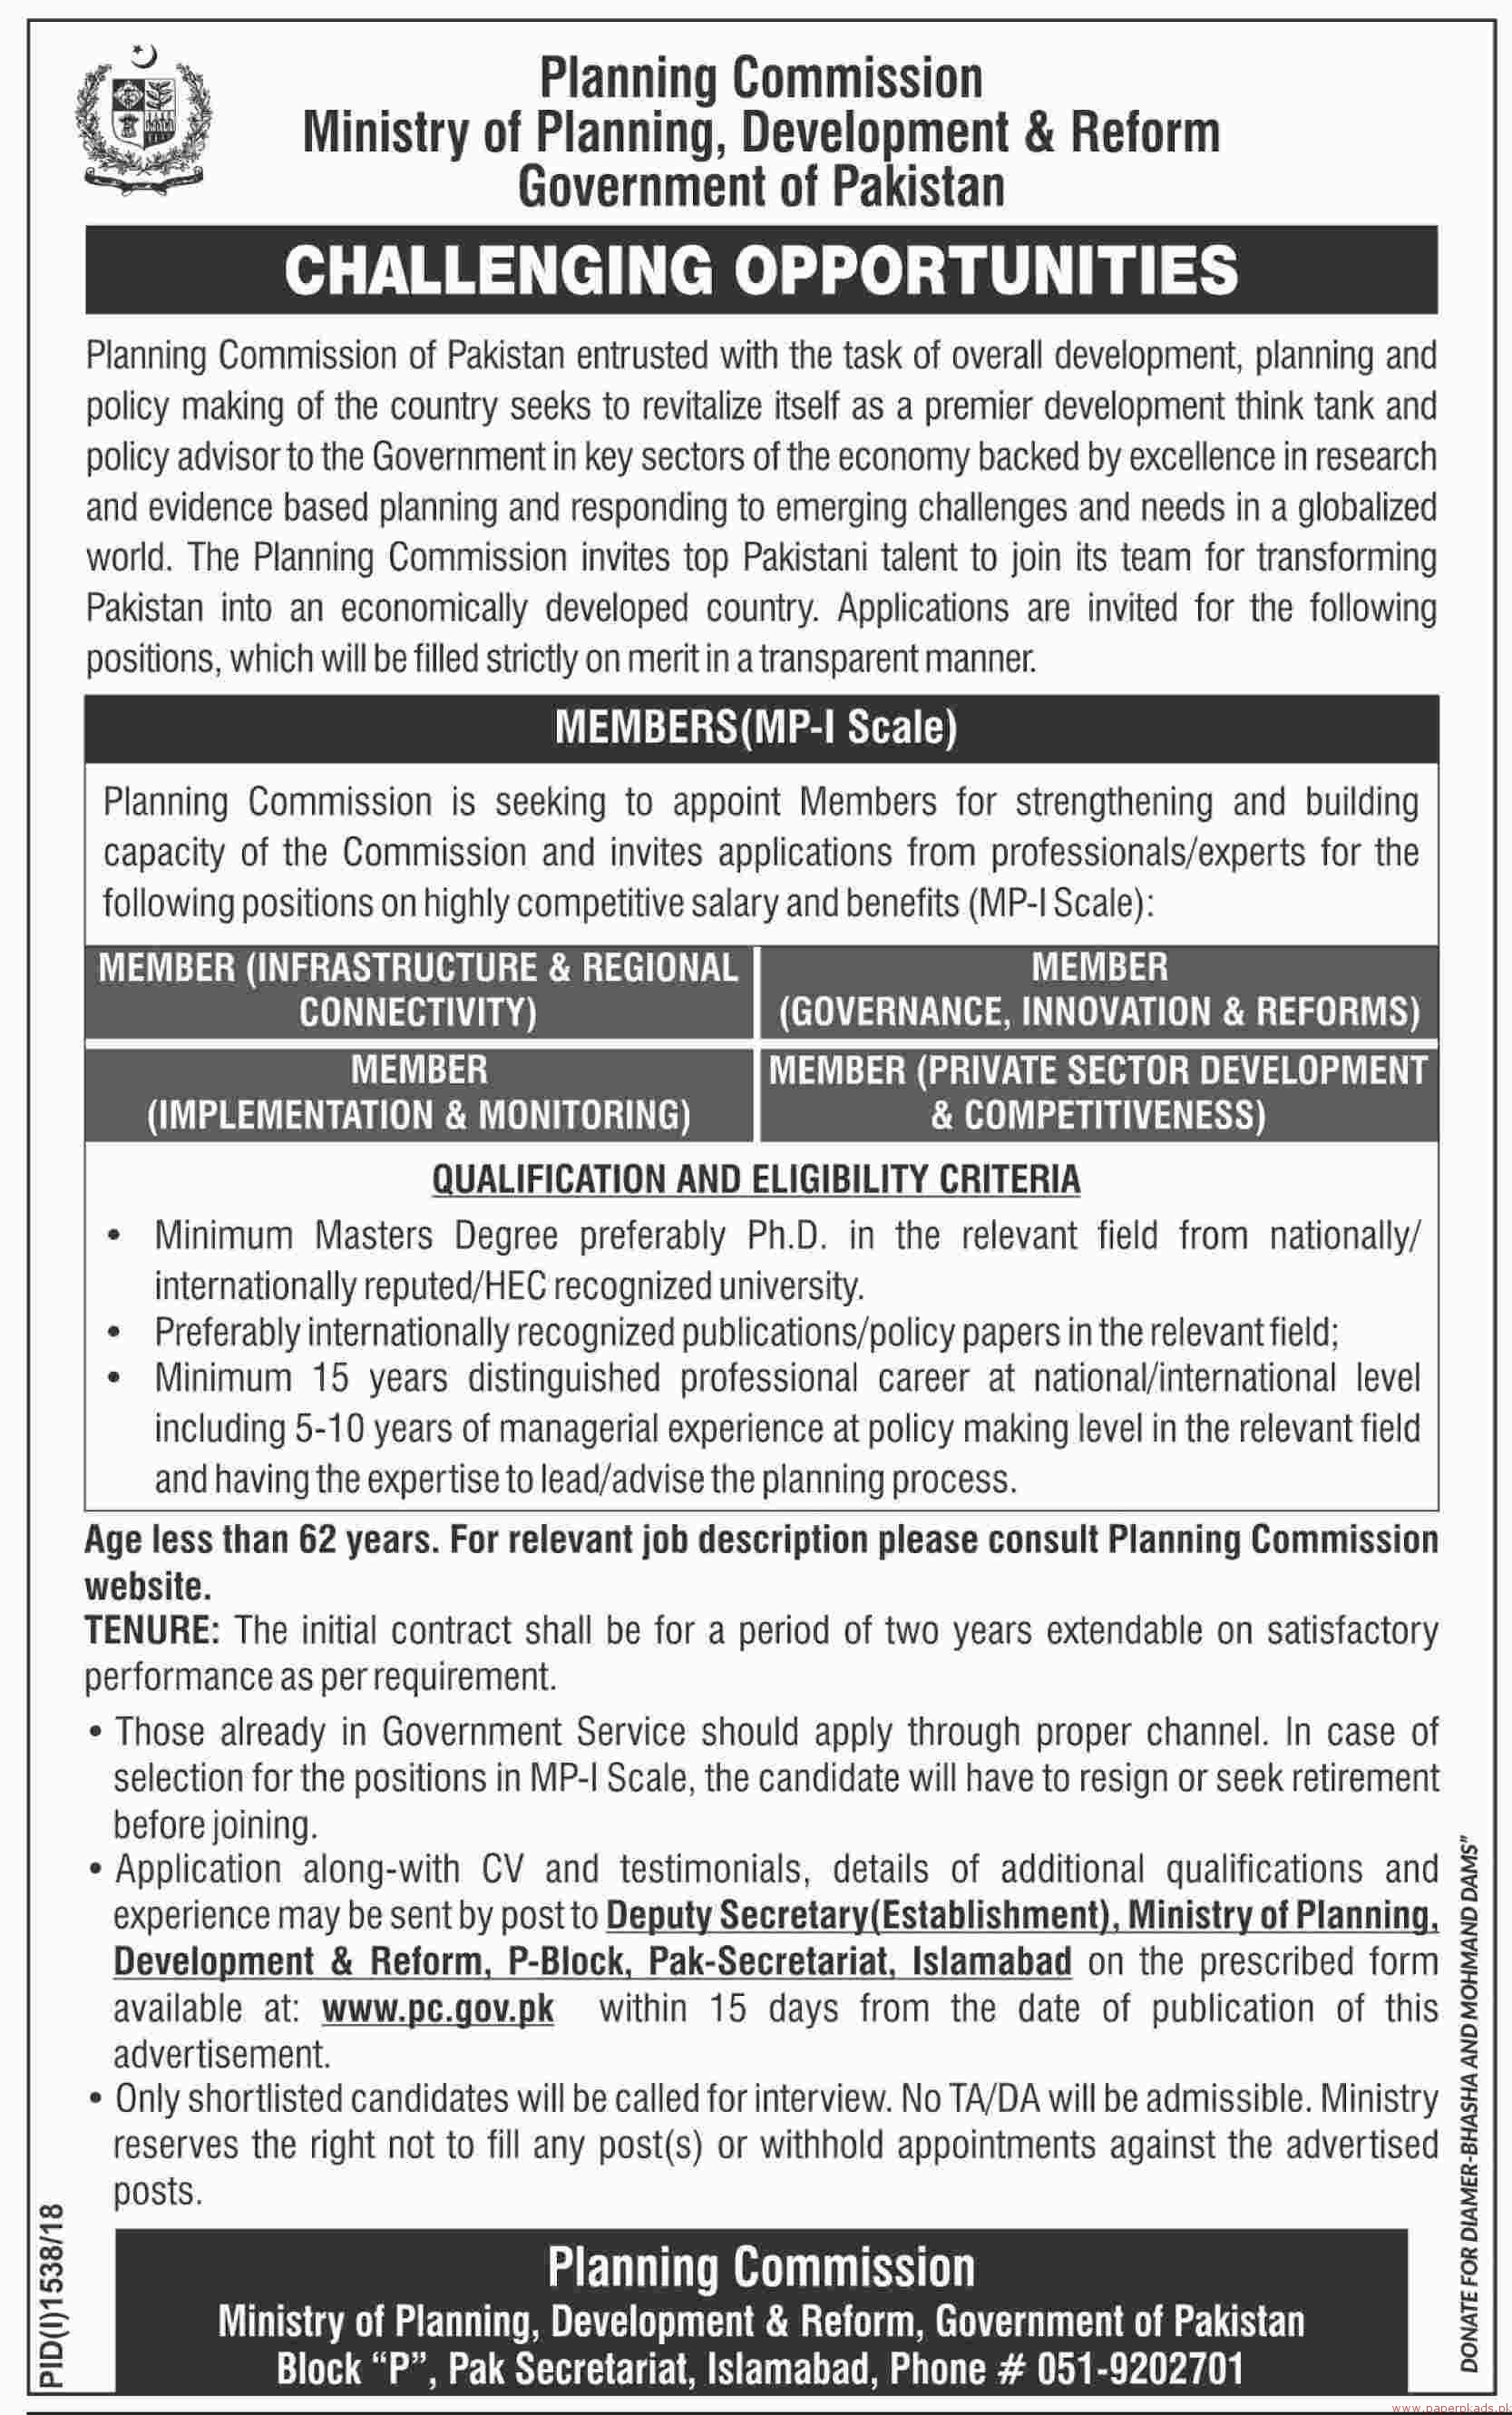 Planning Commission Ministry of Planning Development & Reform Jobs 018 Latest